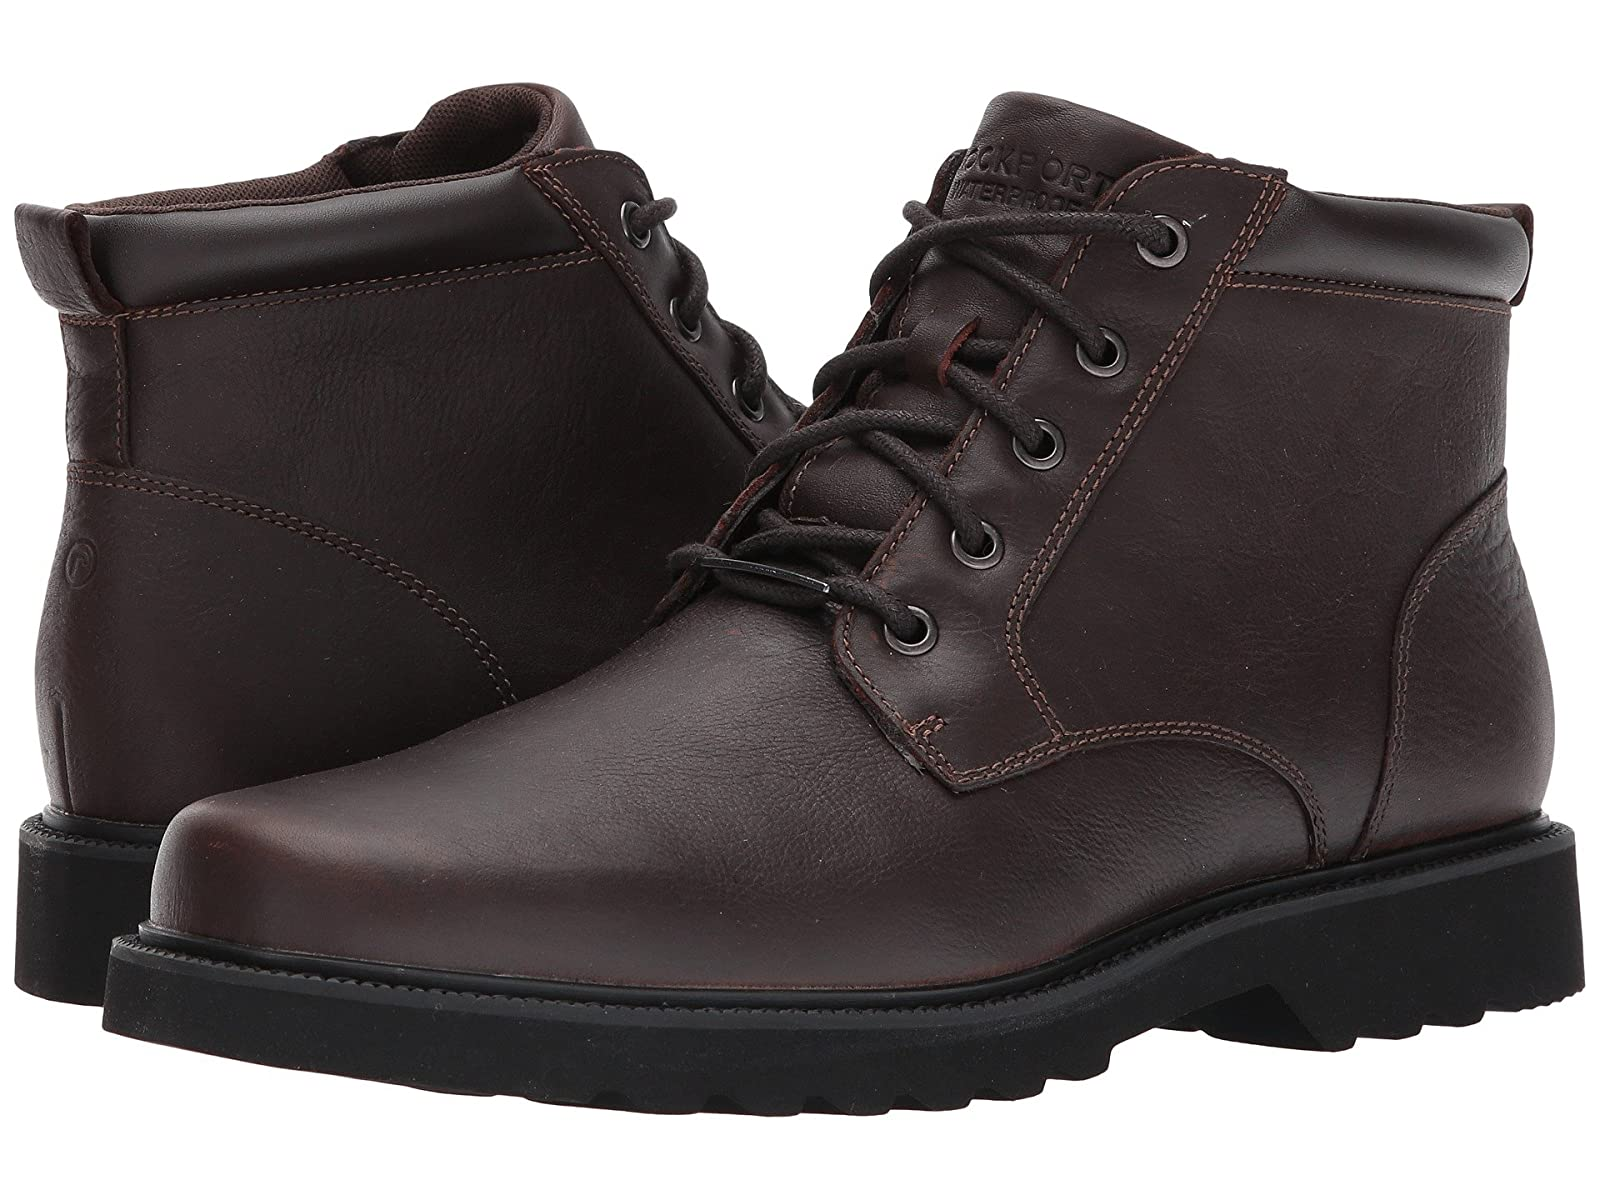 Rockport Northfield Waterproof BootEconomical and quality shoes